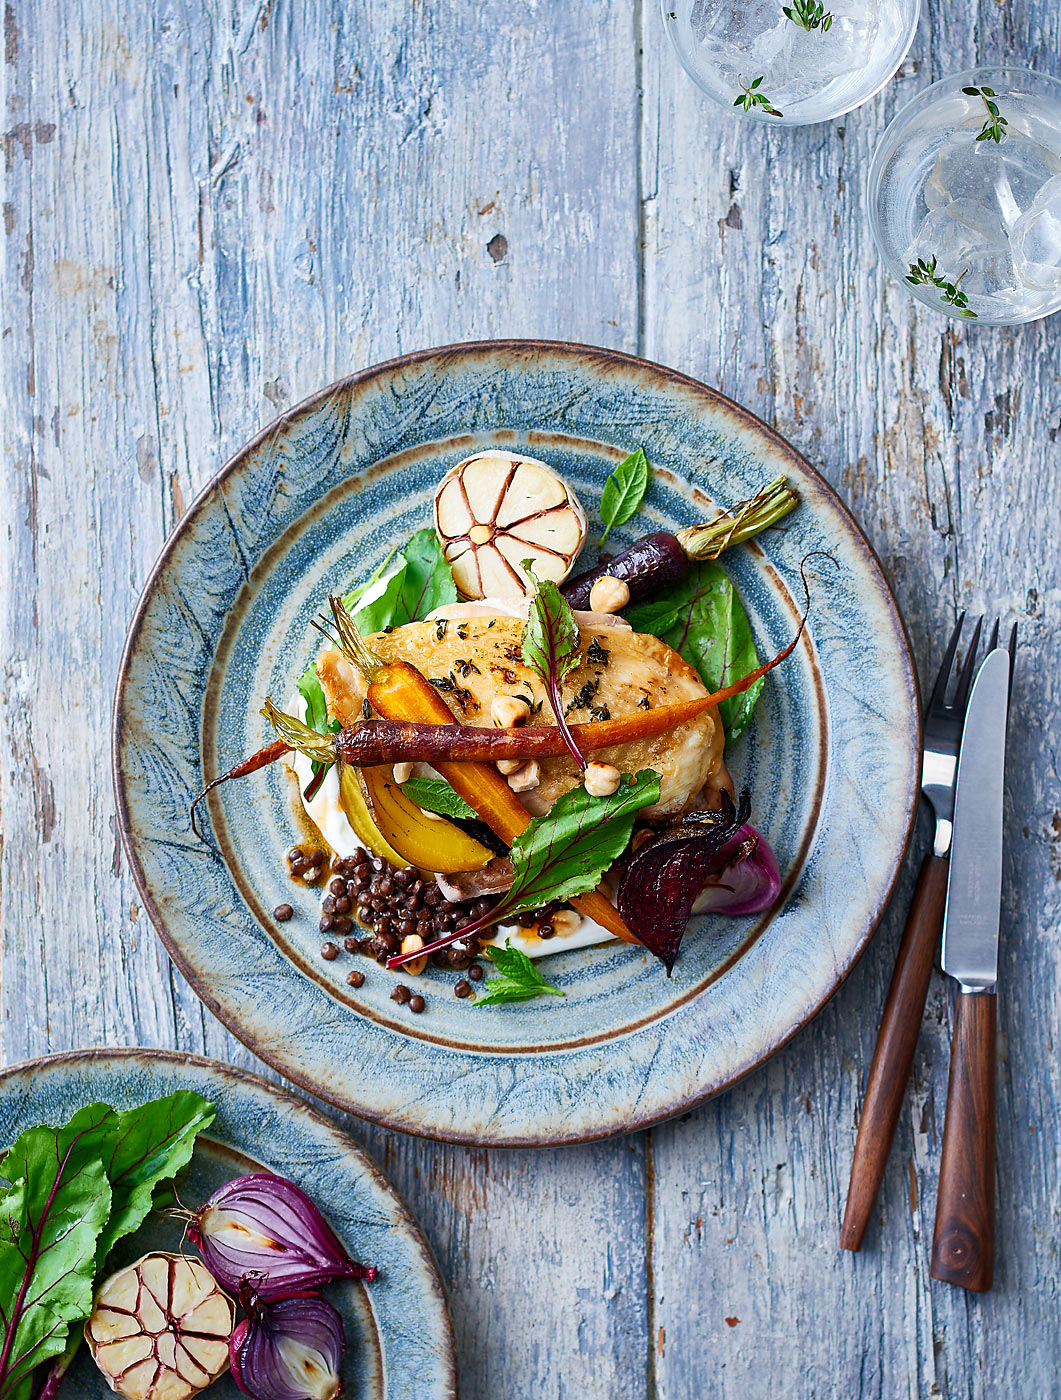 Roasted winter vegetable and chicken salad